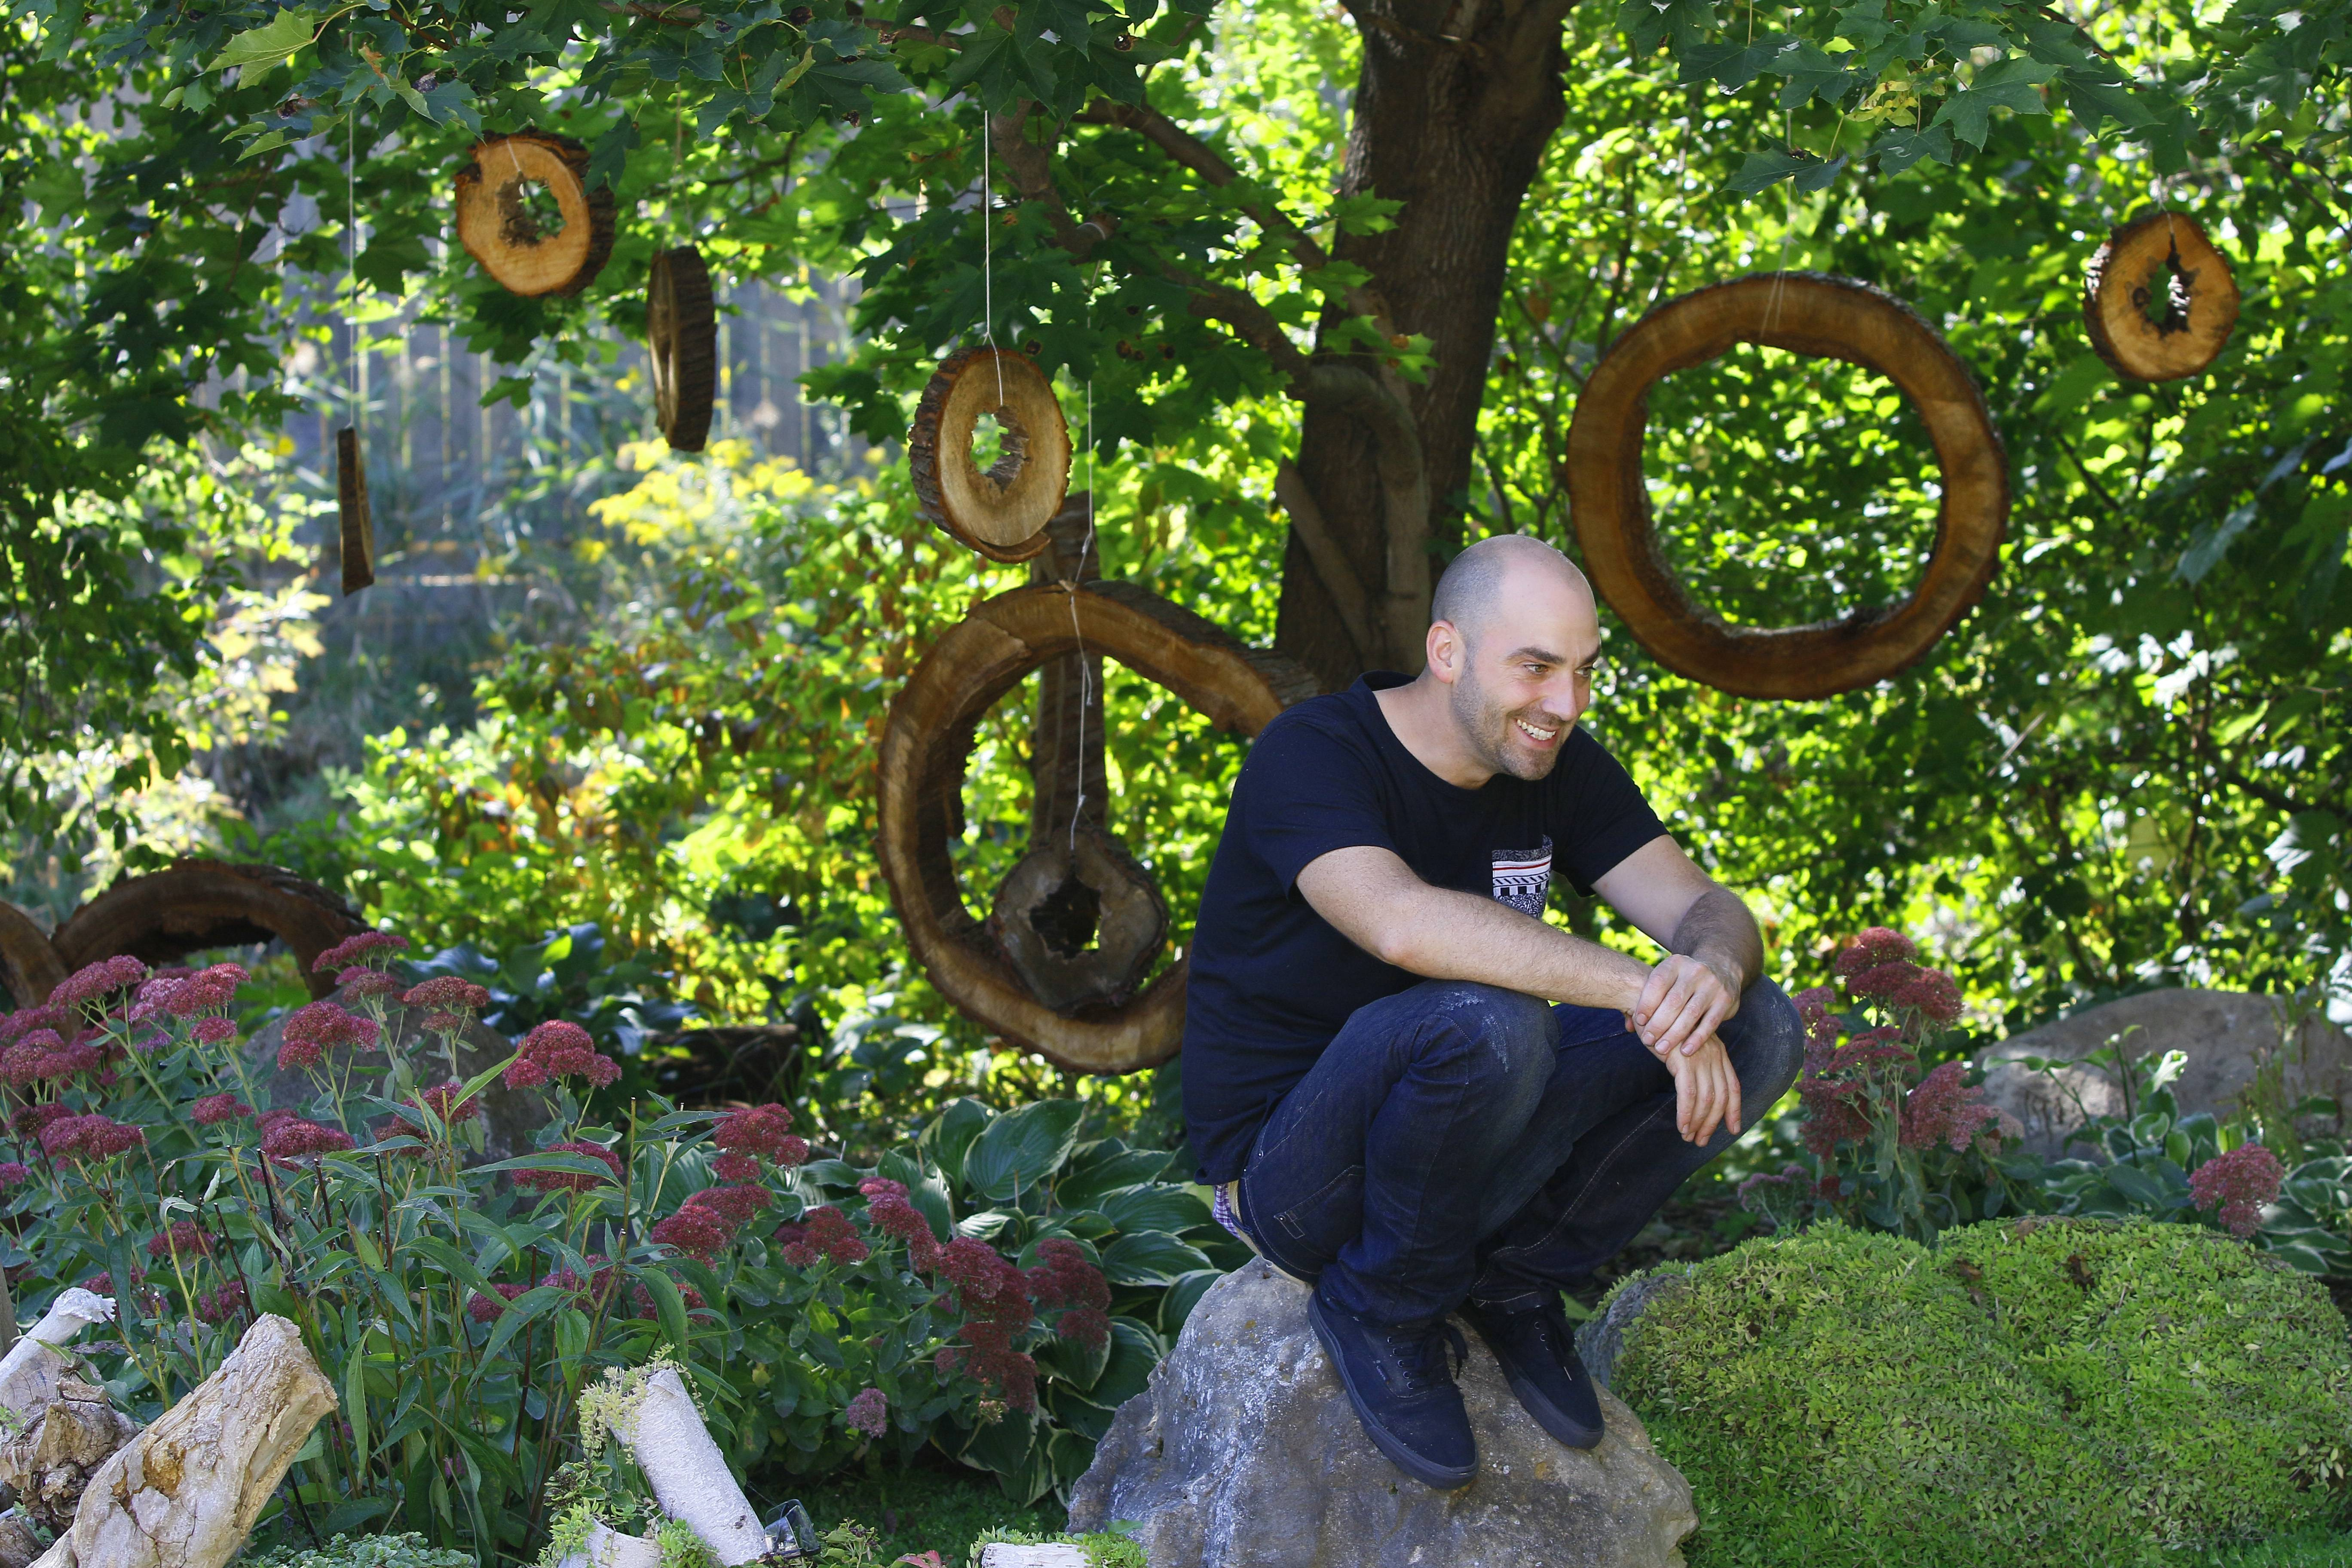 Paul Kuhn created hanging tree ring ornaments from a hollowed out tree on his Naperville property.